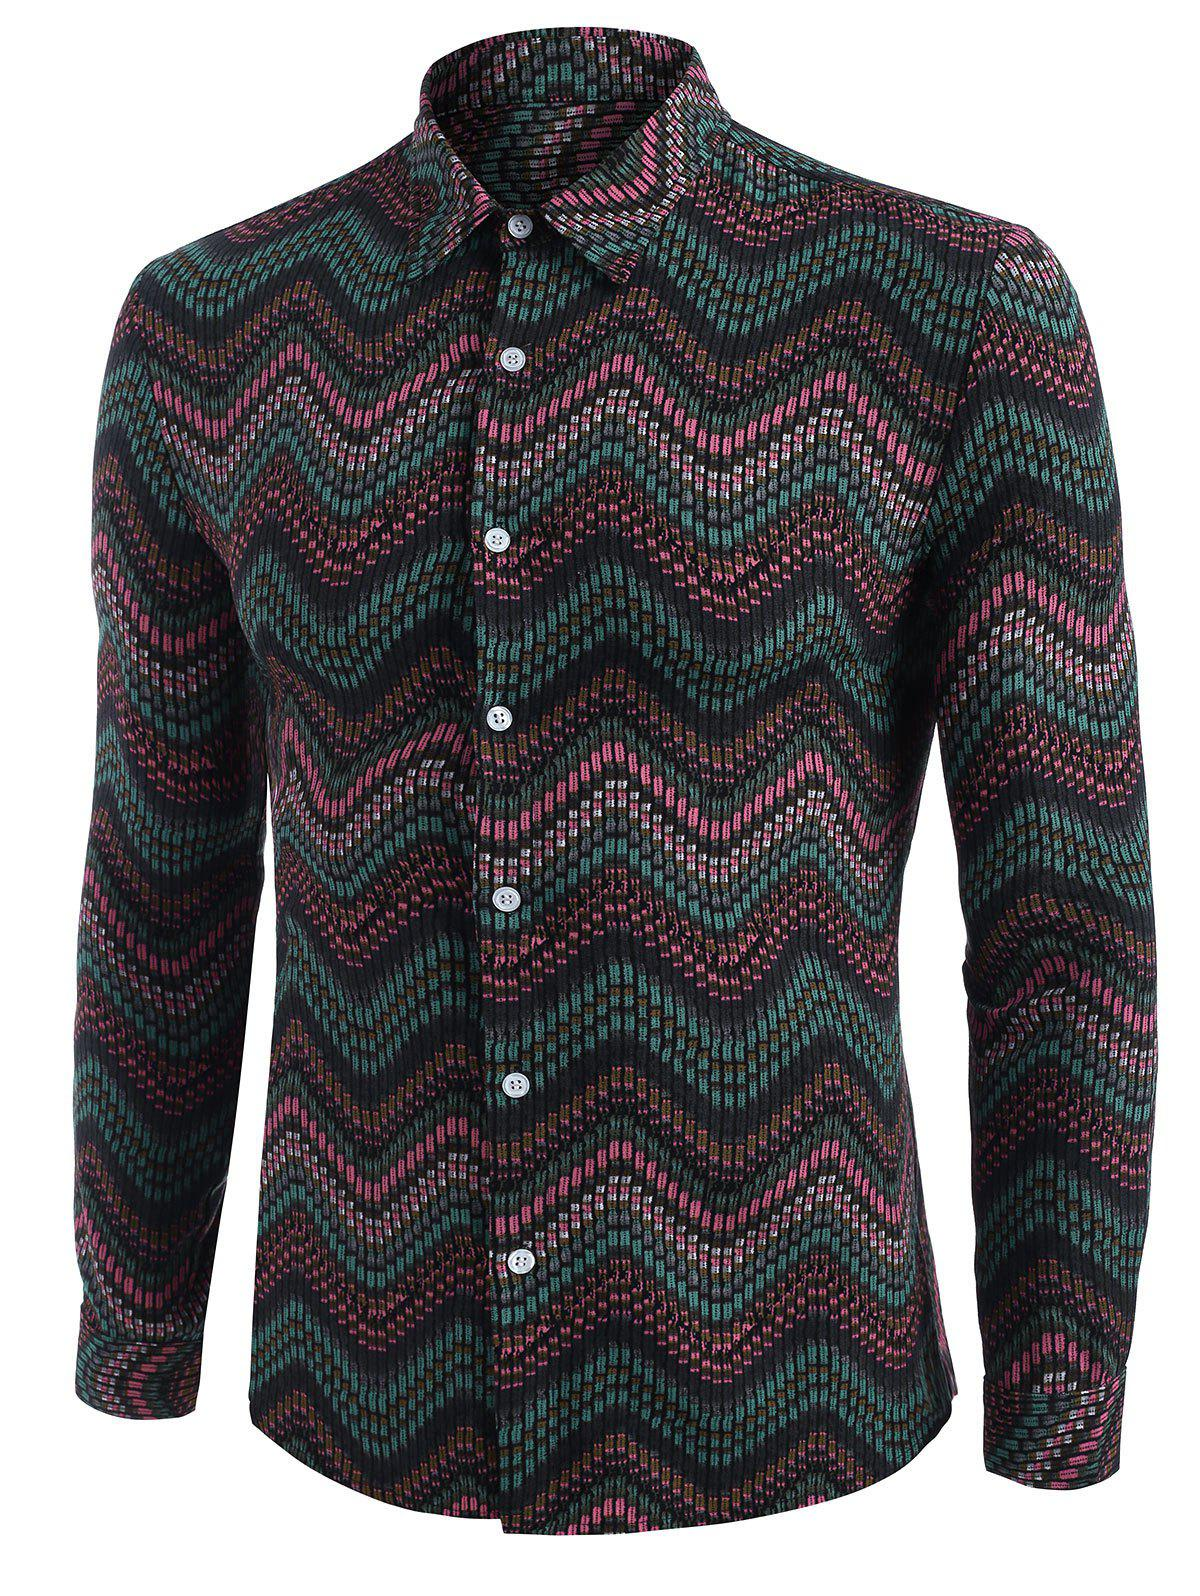 Tribal Zigzag Print Long Sleeve Shirt - DEEP GREEN 3XL